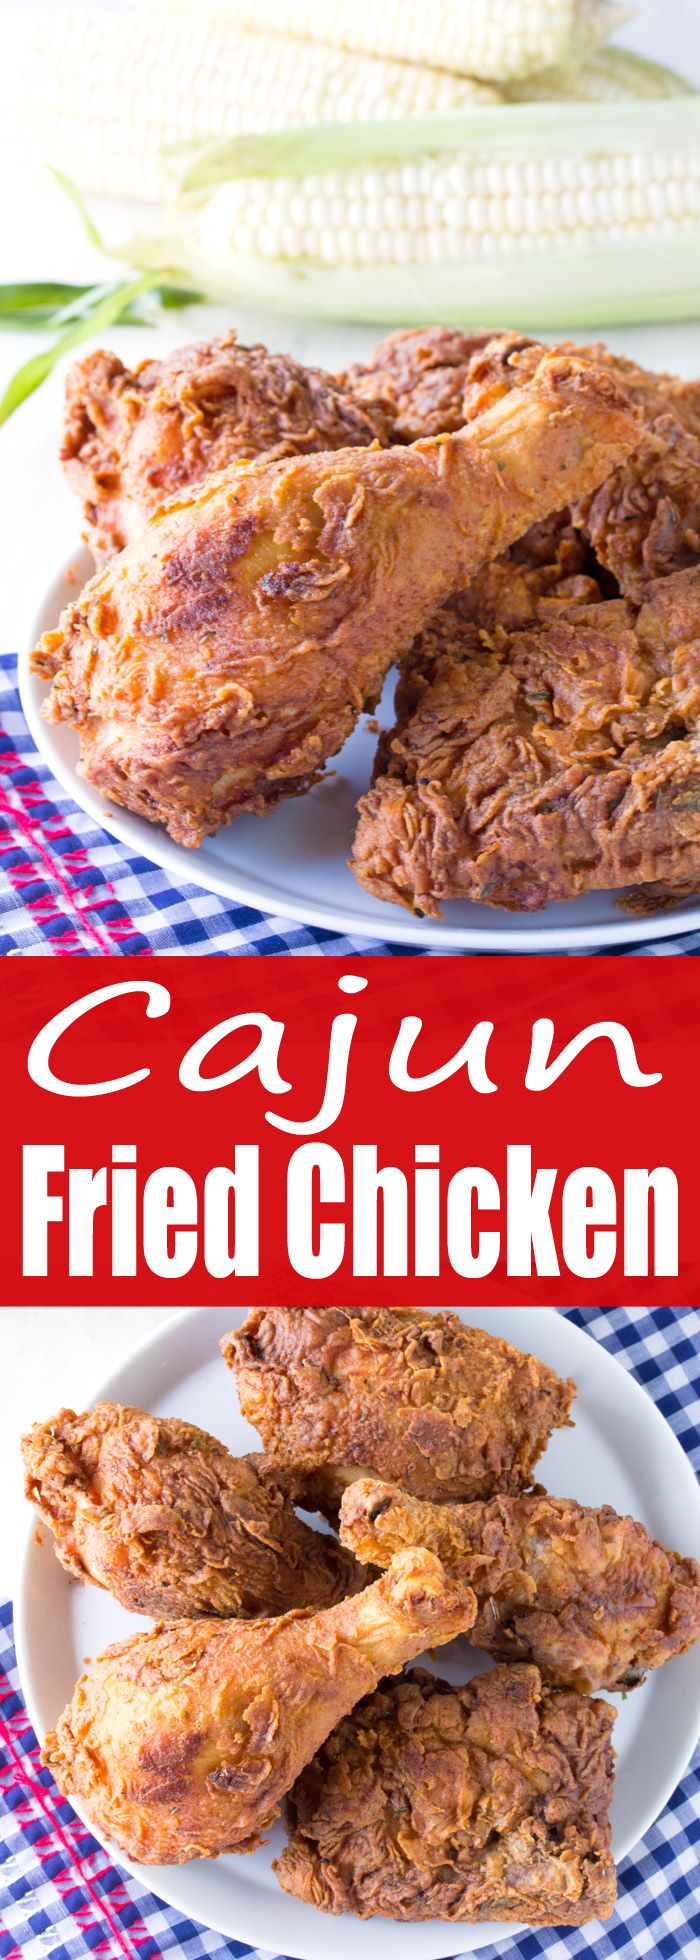 ... and juicy Cajun Fried Chicken. Learn to fry chicken to perfection